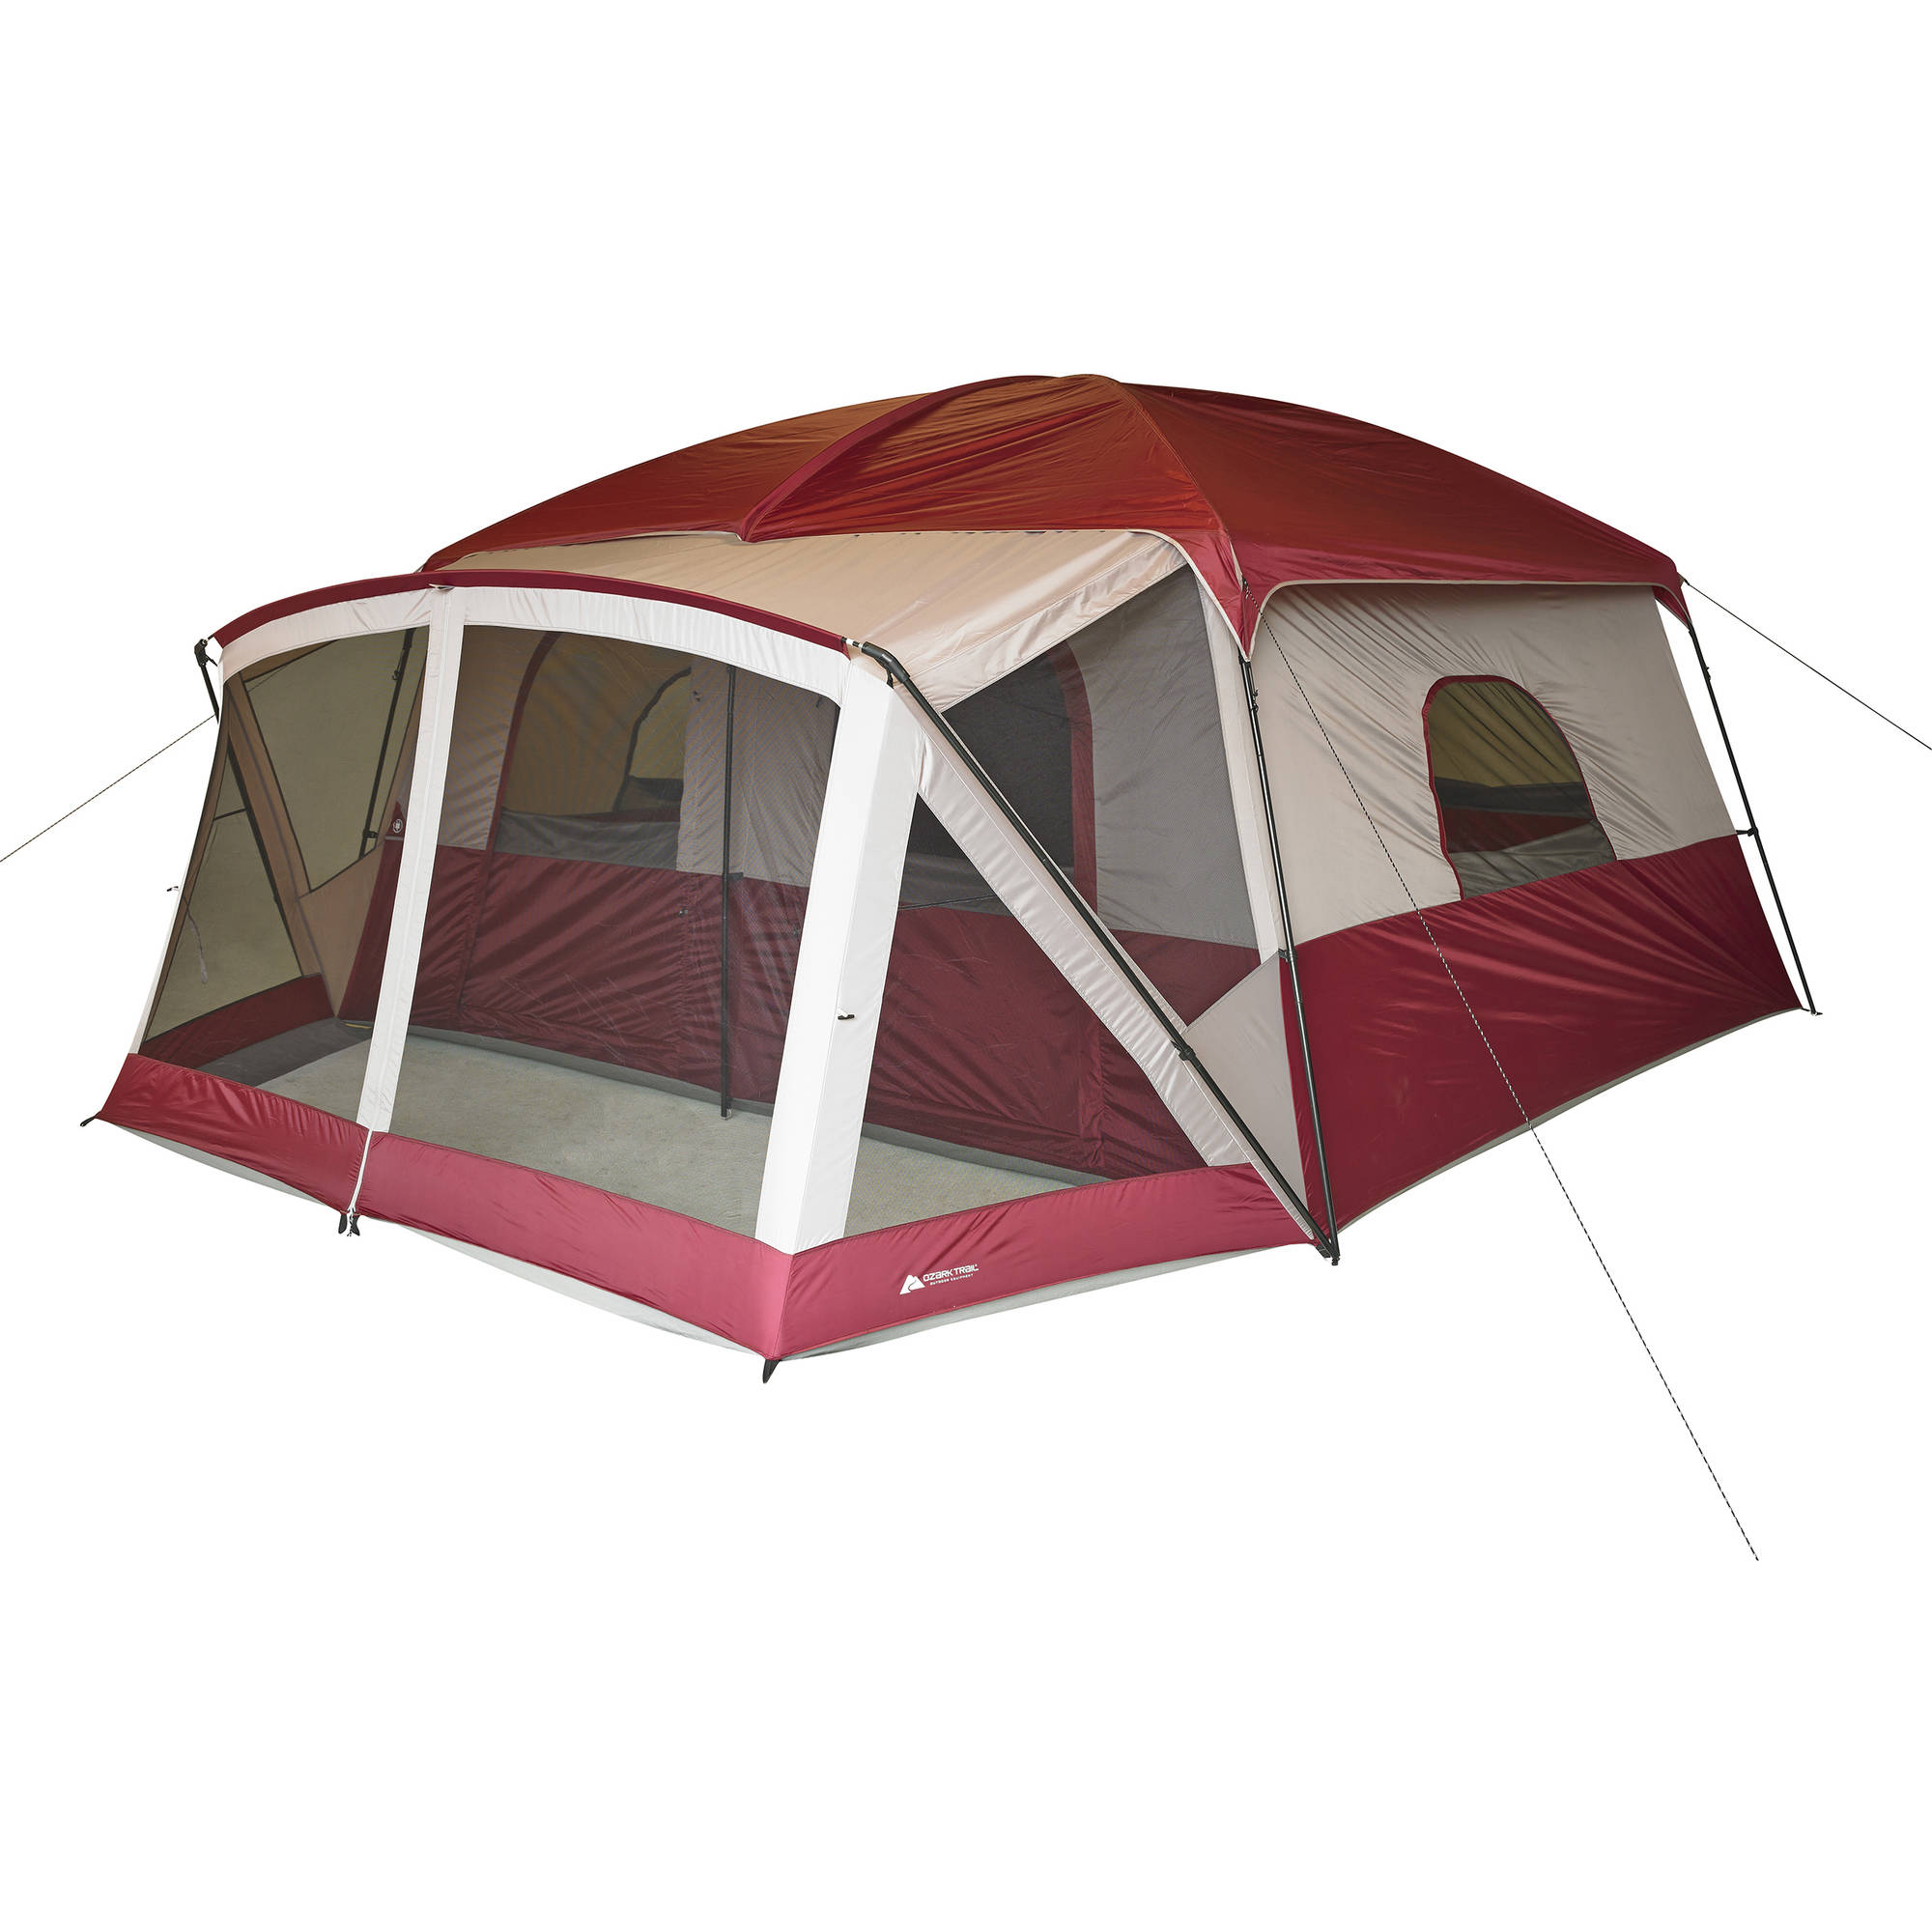 Ozark Trail 12-Person Cabin Tent with Screen Porch  sc 1 st  Walmart & Ozark Trail 12-Person Cabin Tent with Screen Porch - Walmart.com